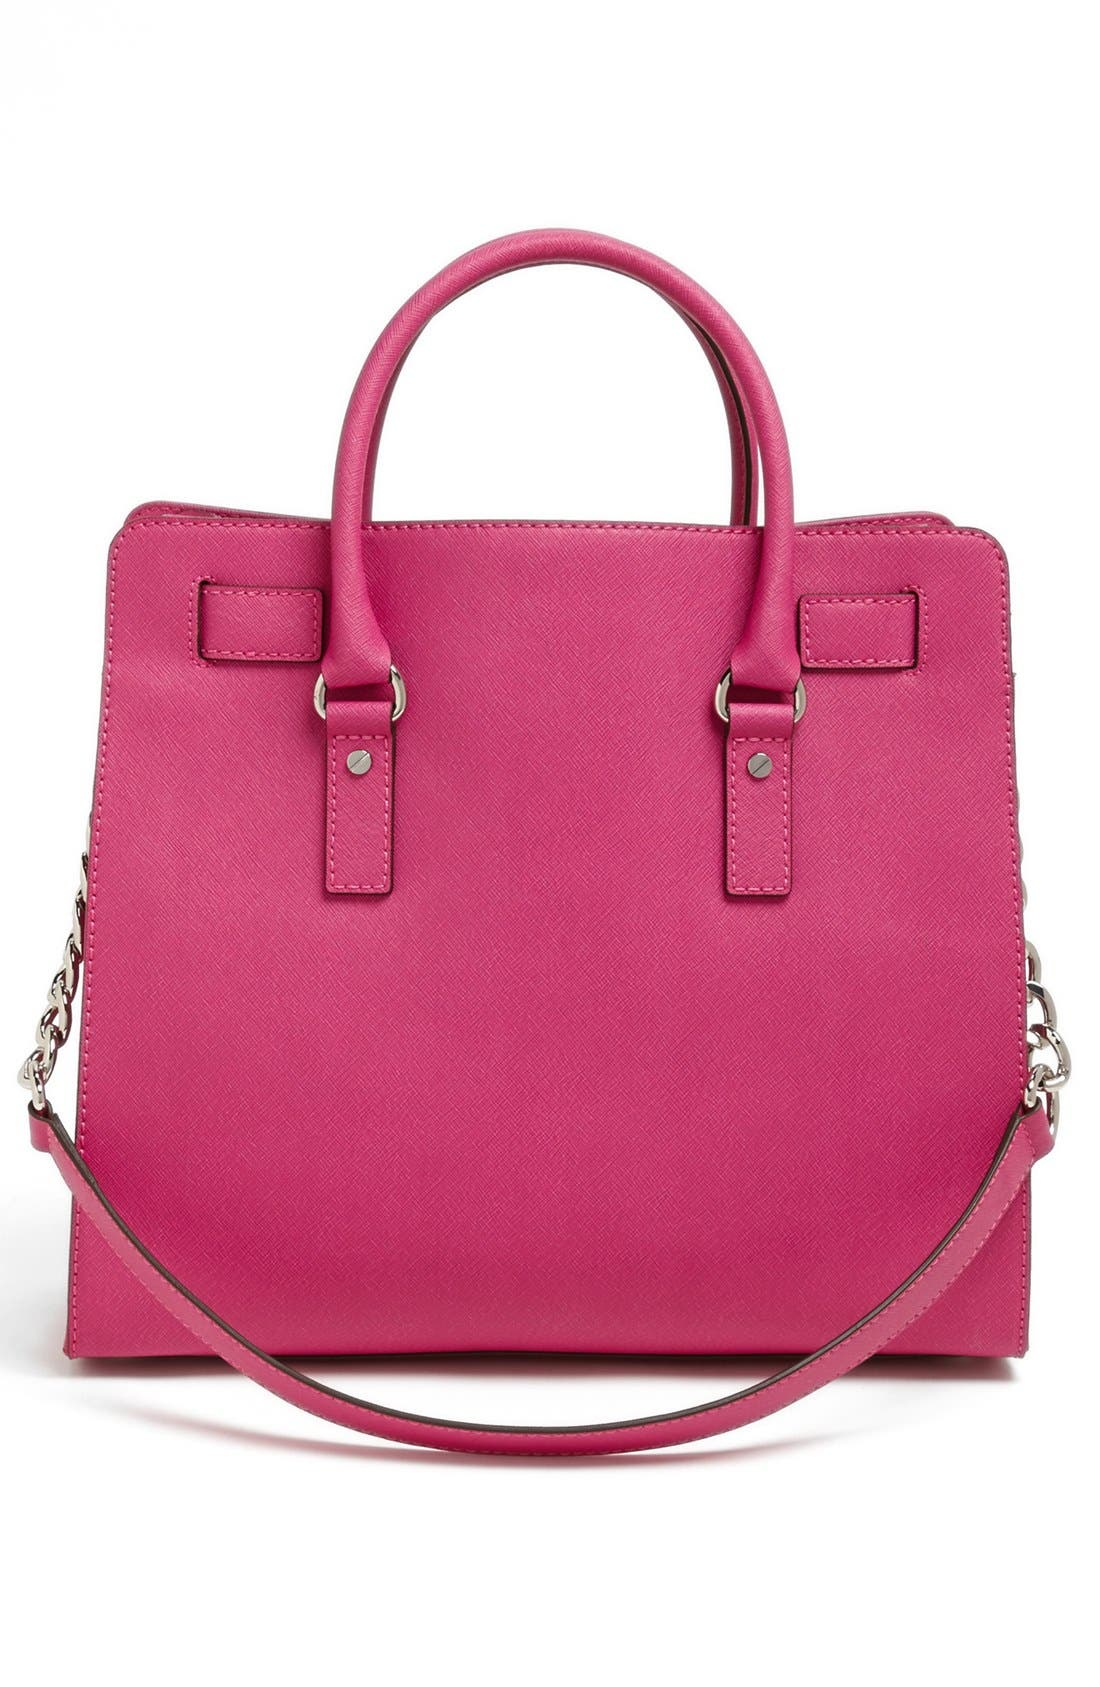 Alternate Image 3  - MICHAEL Michael Kors 'Large Hamilton' Saffiano Leather Tote